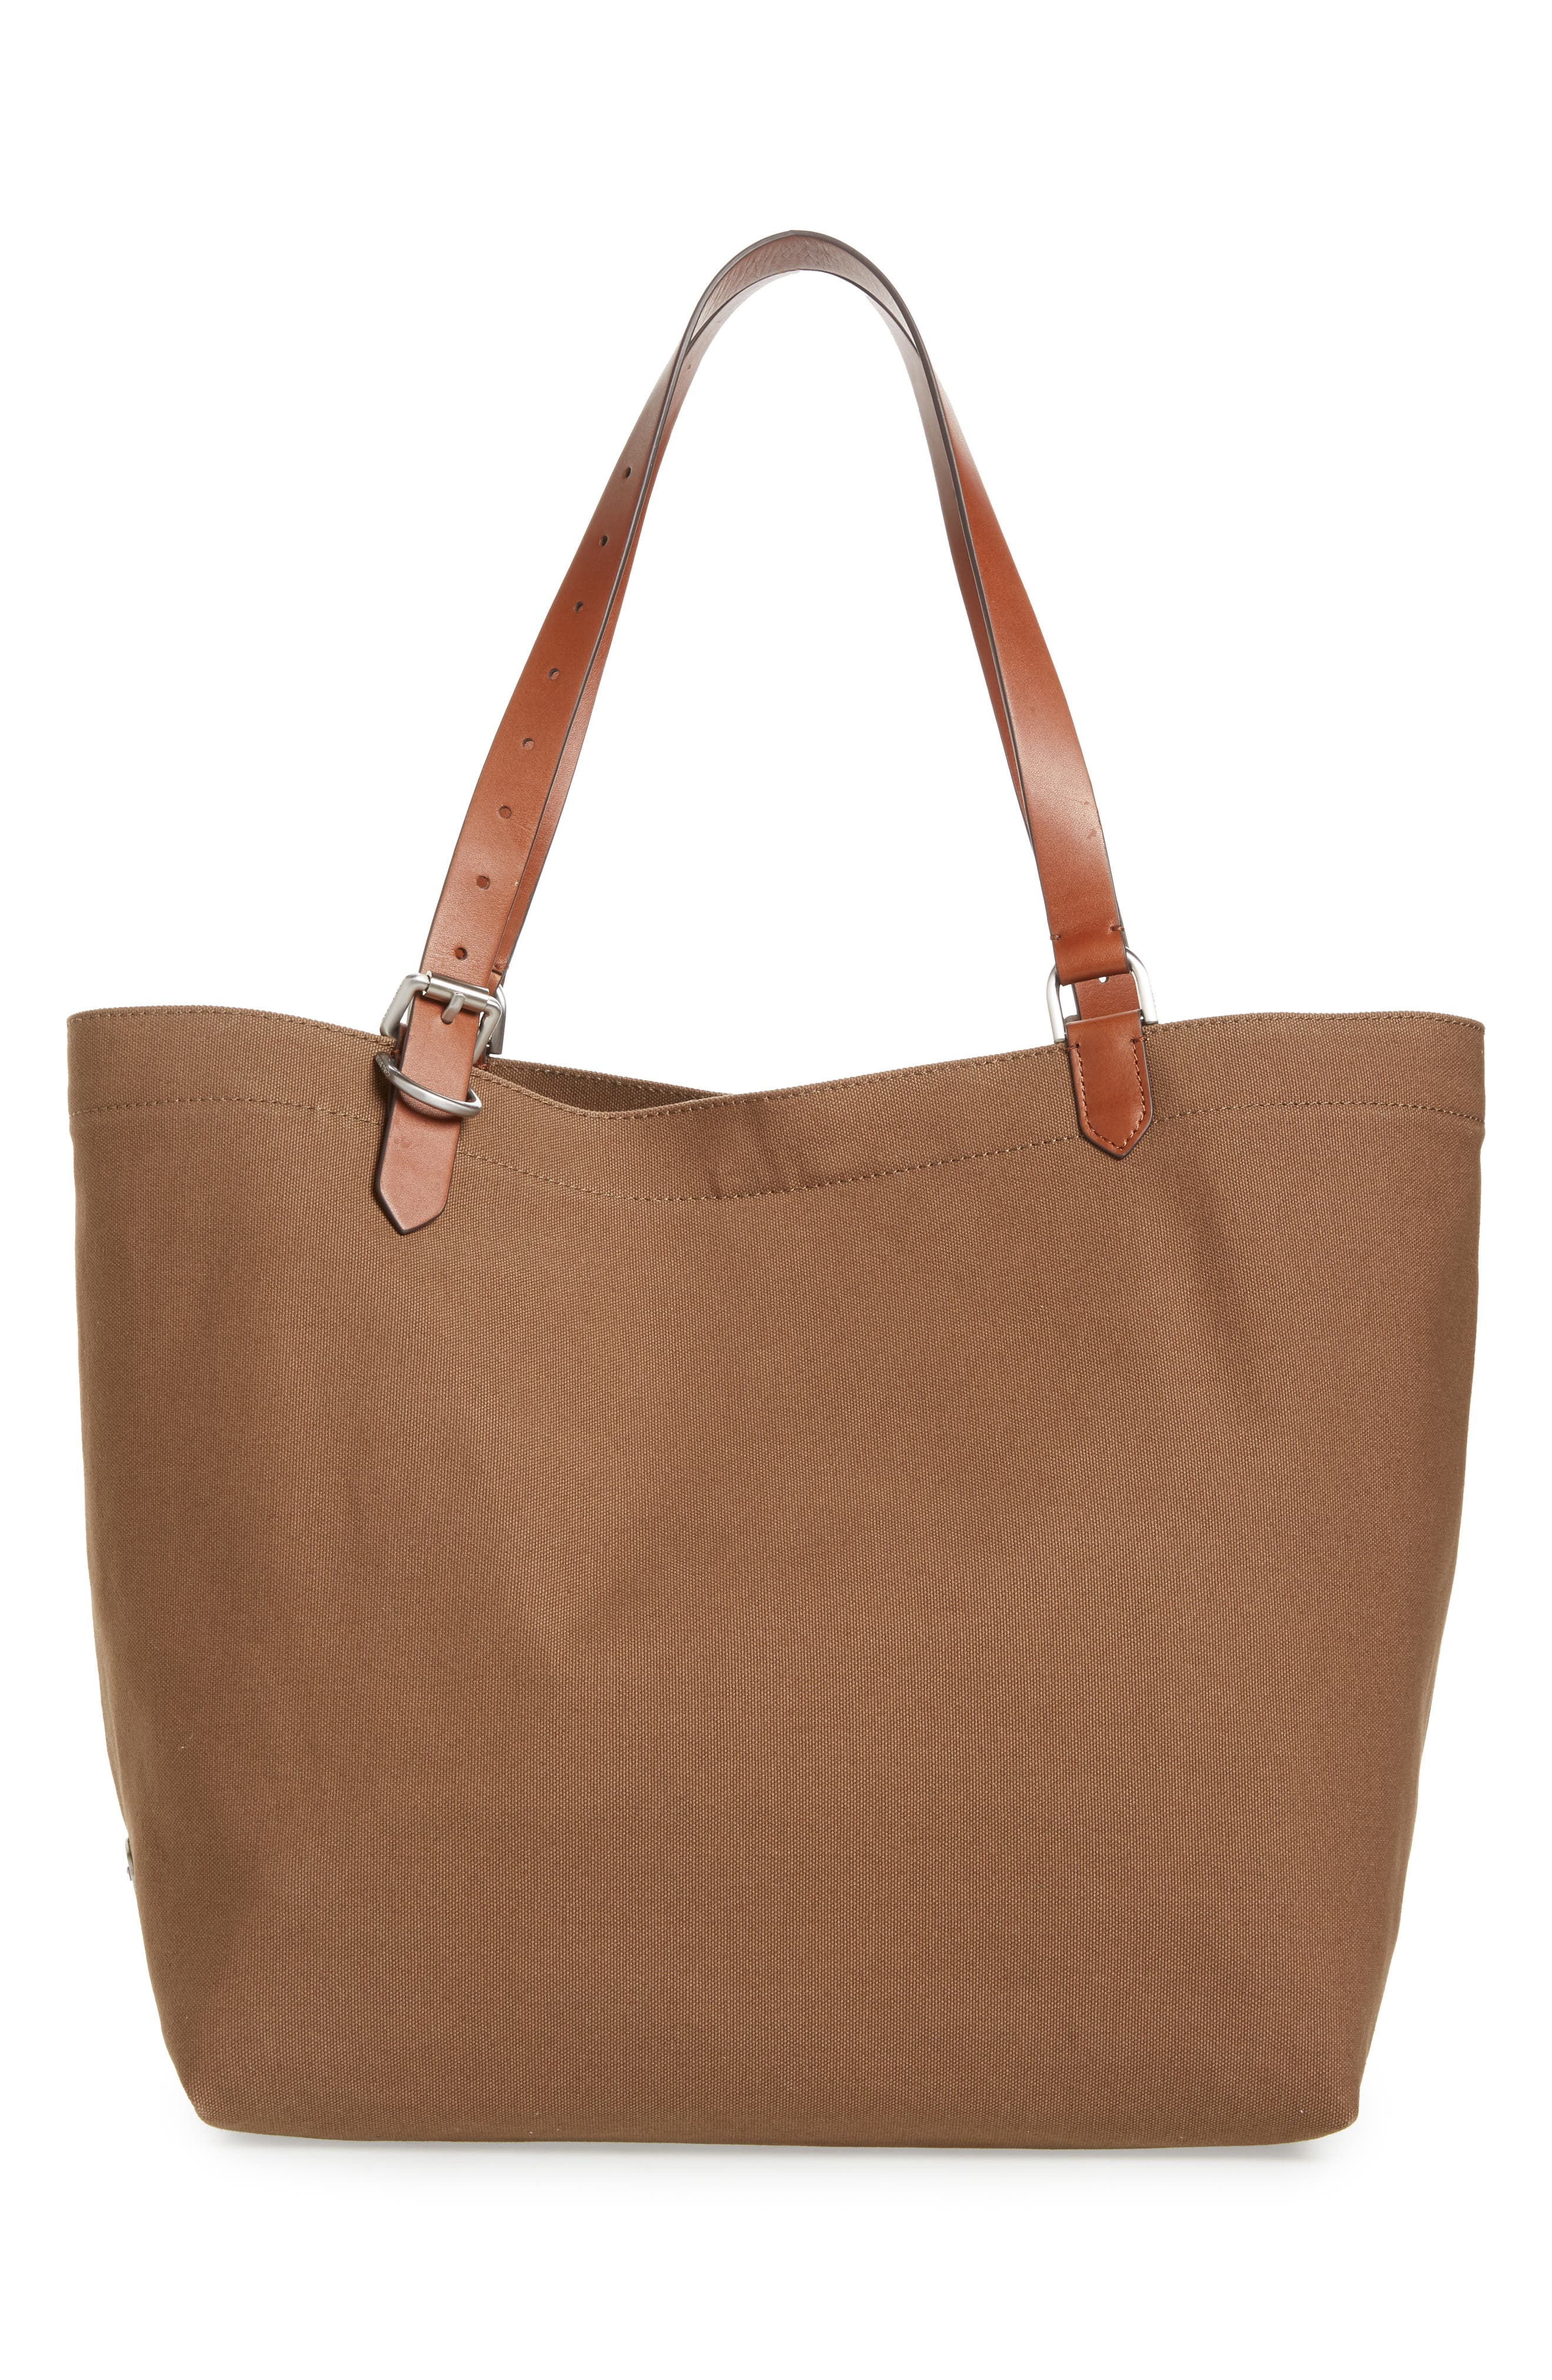 Cole Haan Totes Summer Friday Canvas Tote